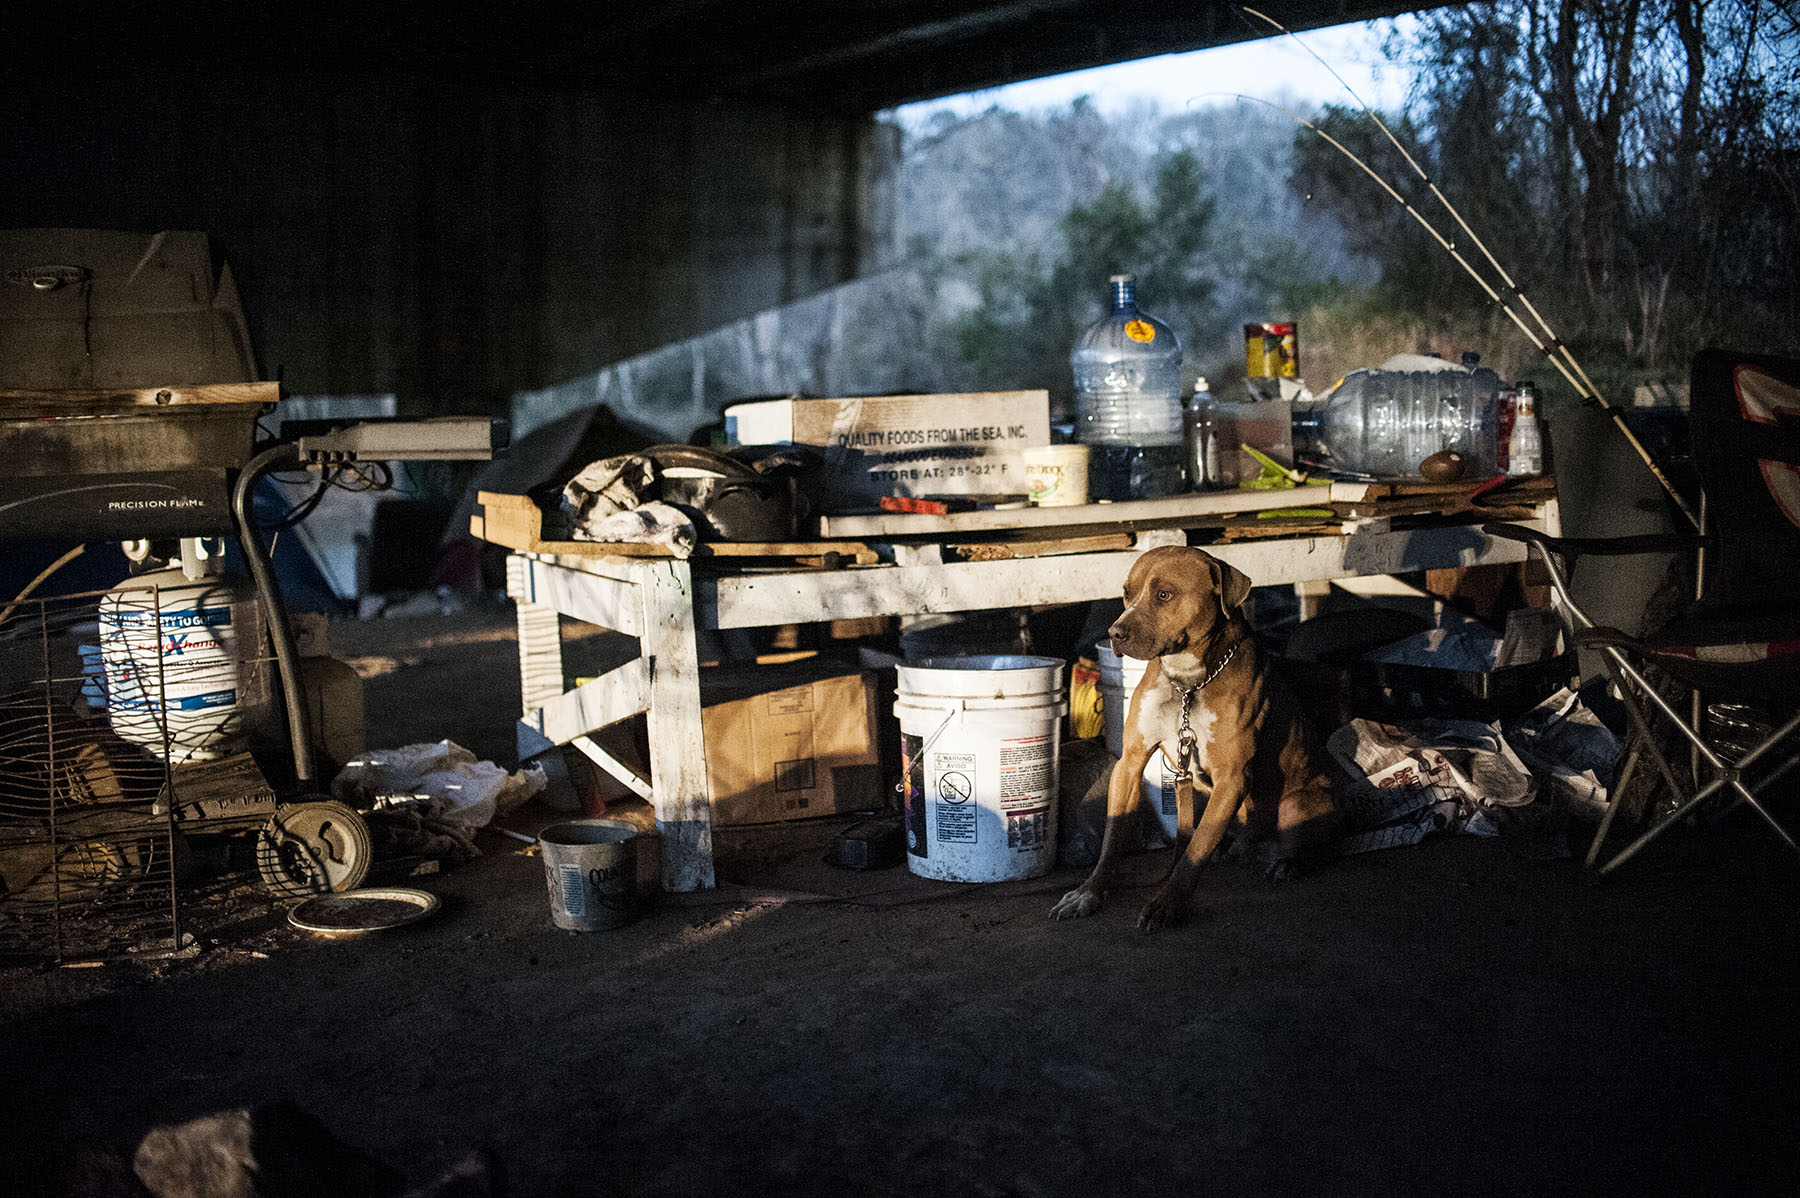 Third Place | News Photo Story Melissa Melvin-RodriguezA dog sits tied up and shivering underneath the Grove Street bridge where a makeshift table and tents are used by homeless people who live there.